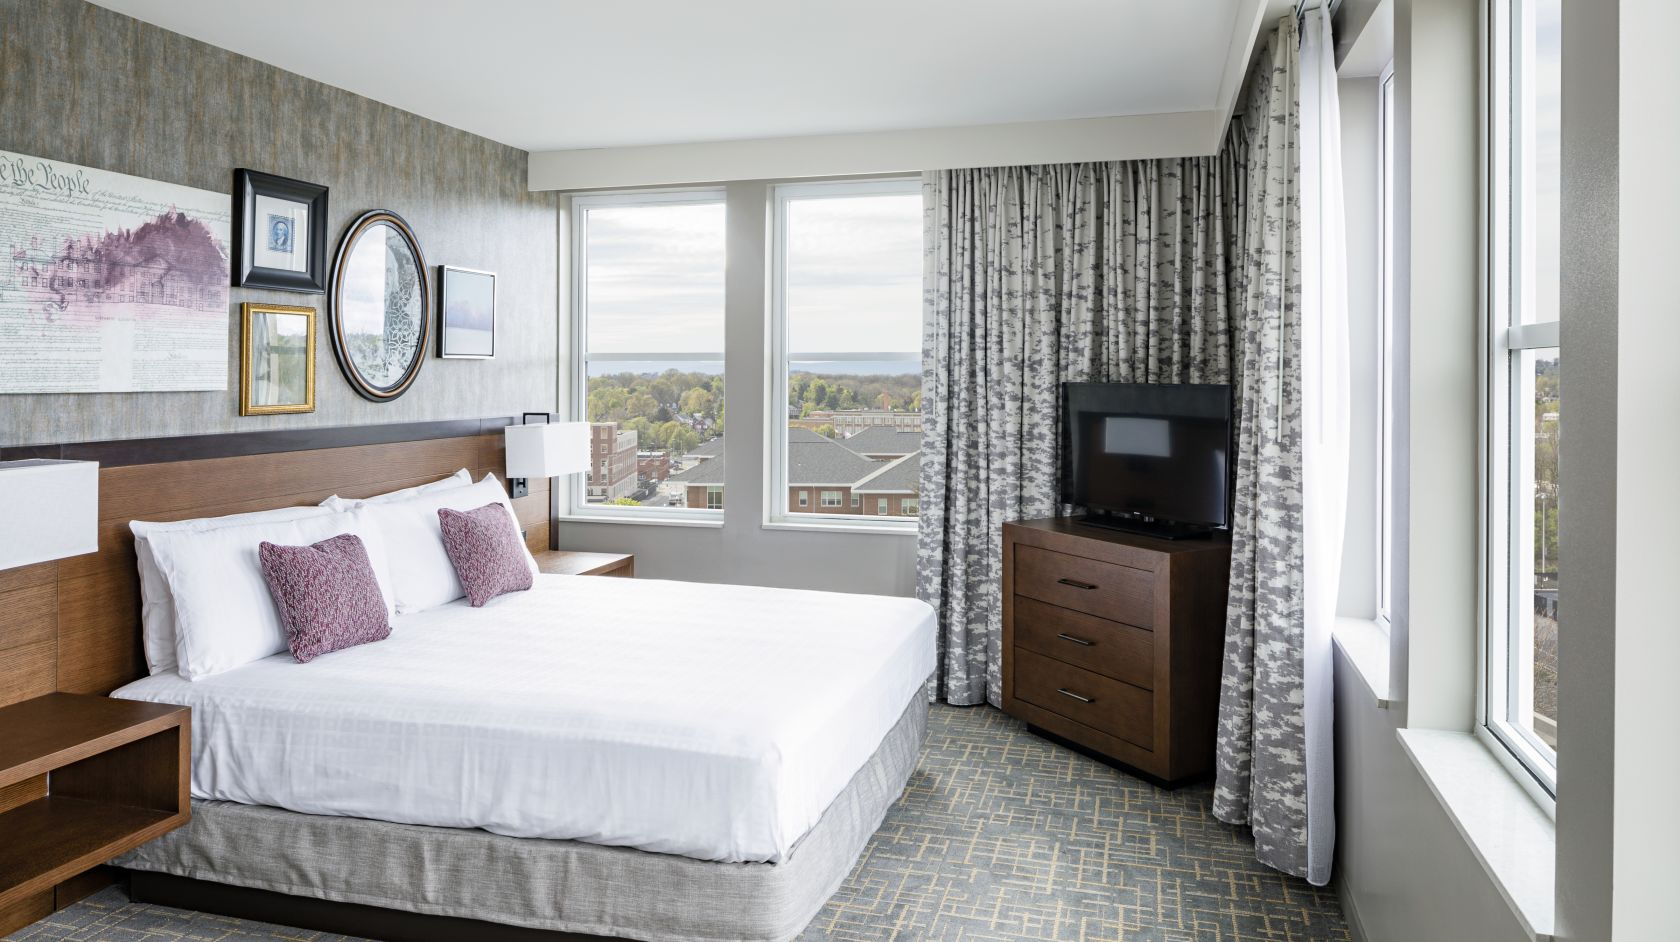 Executive sweet bedroom at The Hotel Madison in Harrisonburg, Virginia